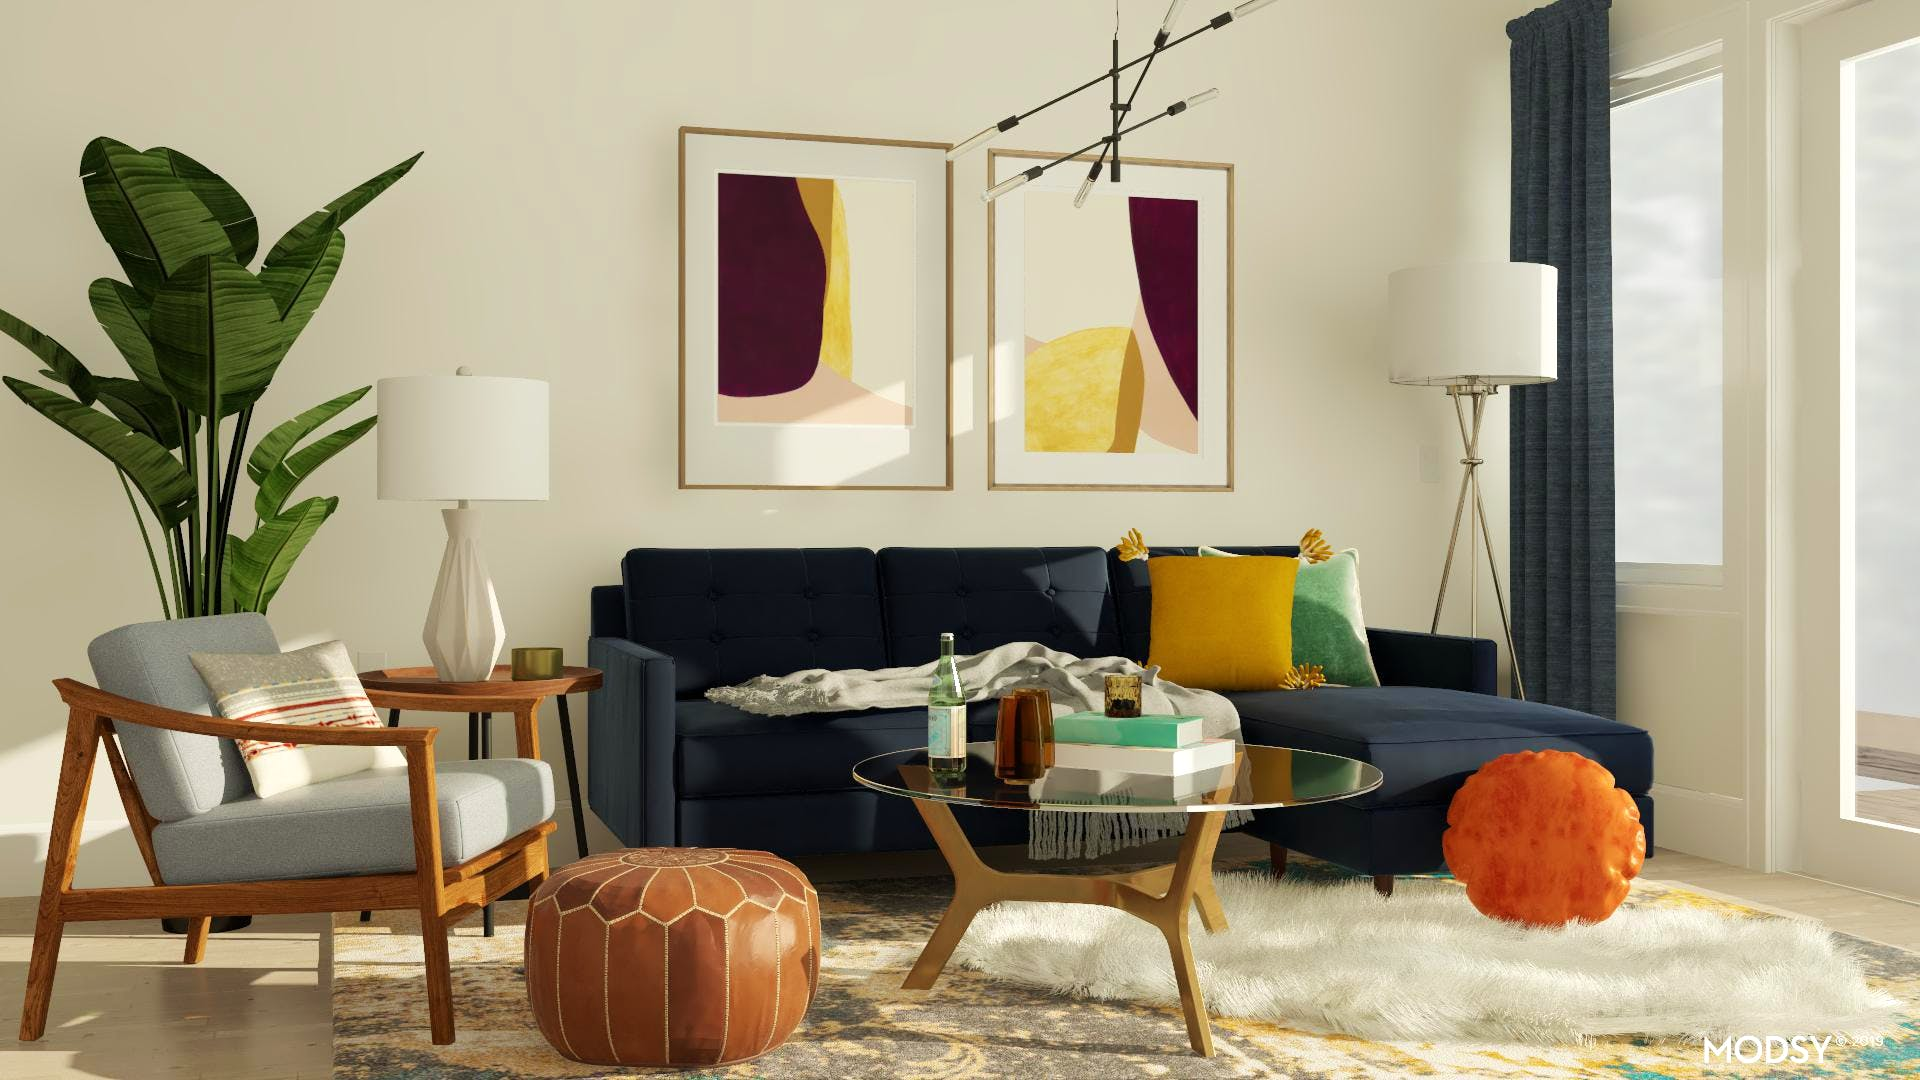 Jewel Tones Design Ideas and Styles from Modsy Designers